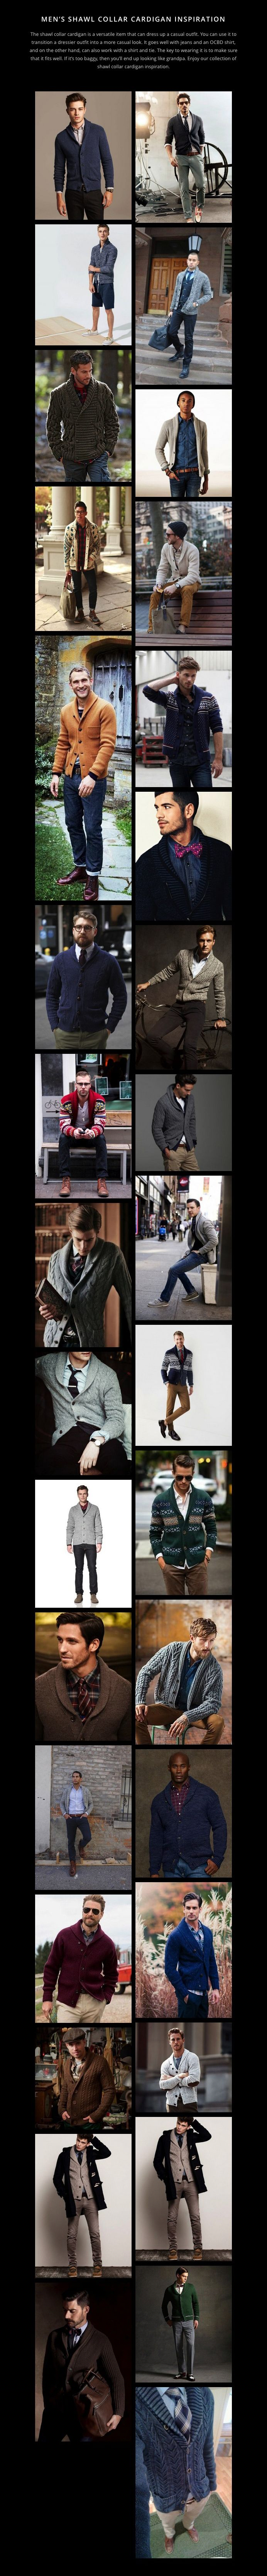 MEN'S SHAWL COLLAR CARDIGAN INSPIRATION